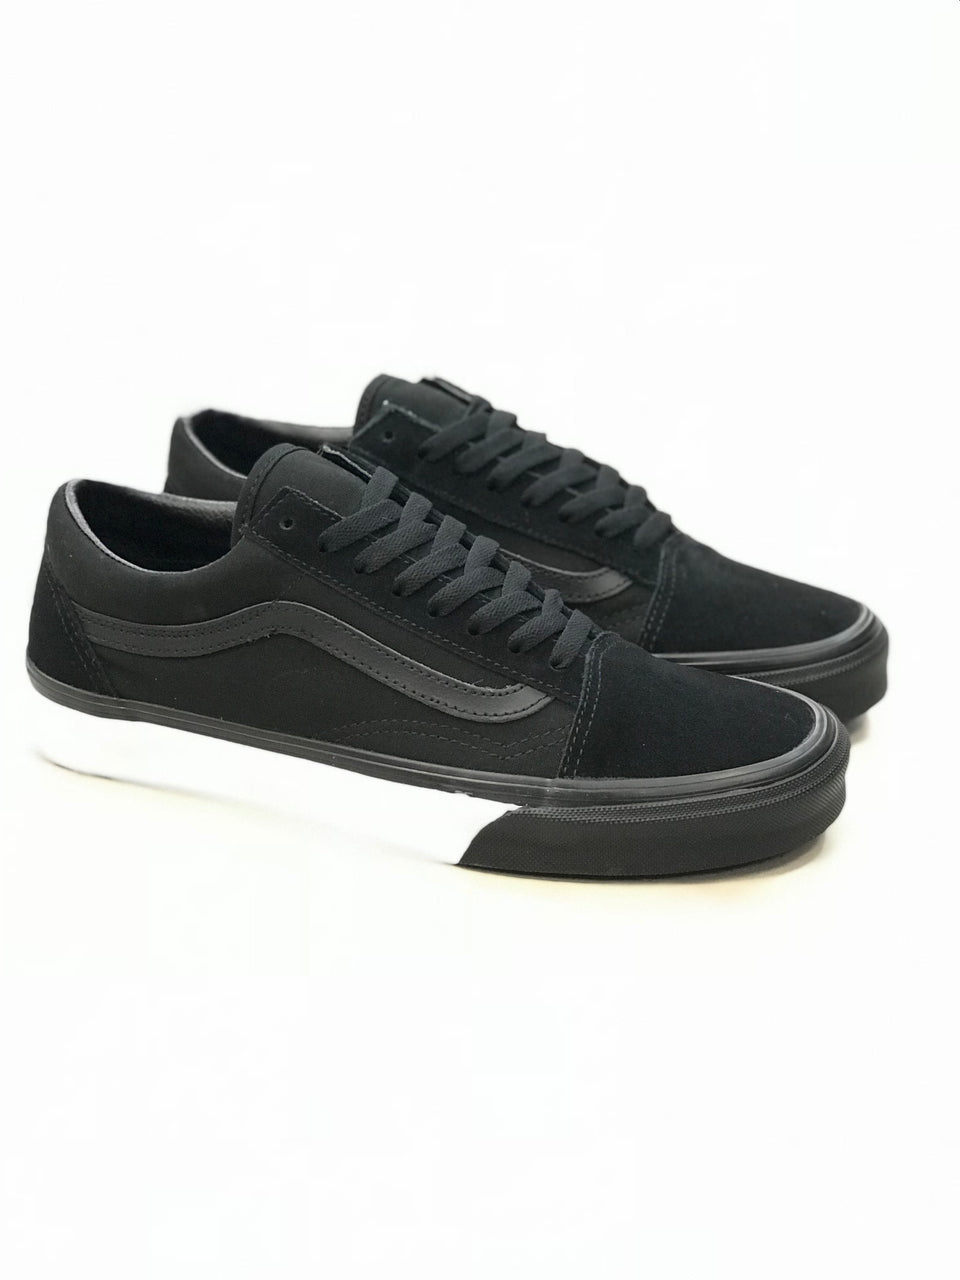 Vans Old Skool (Mono Bumper) Black/True White